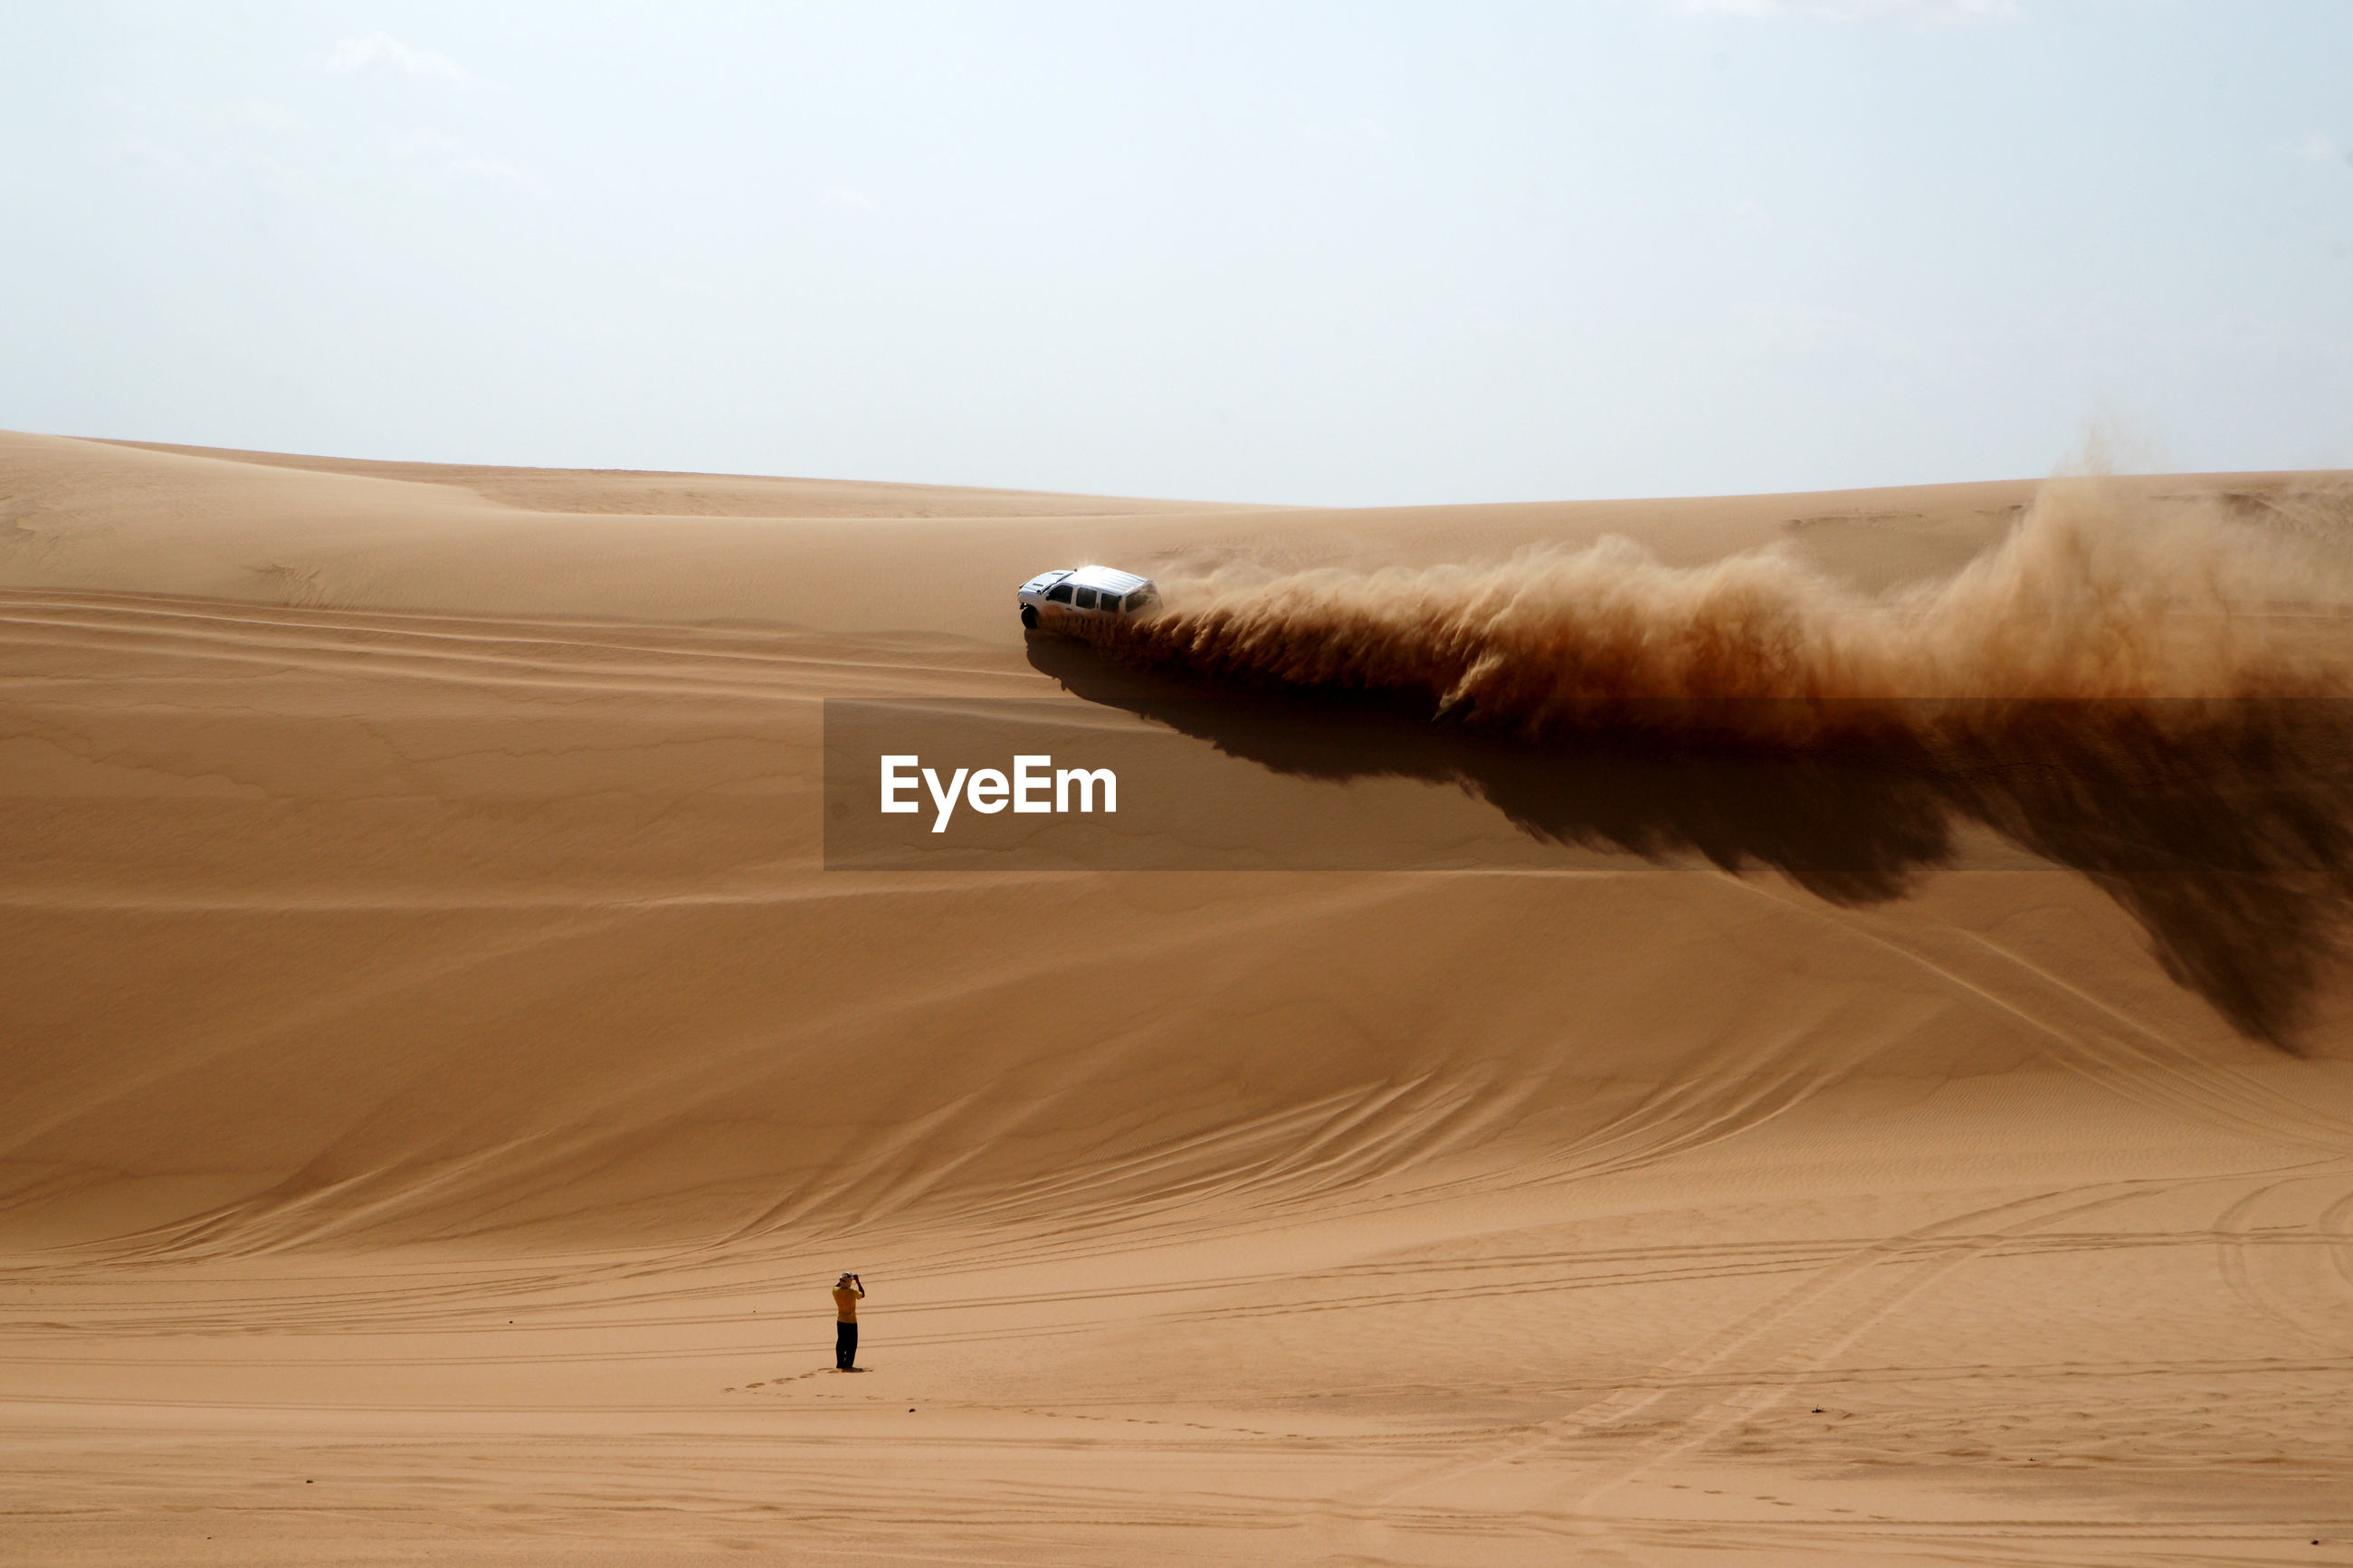 Rear view of man standing near off-road vehicle on desert